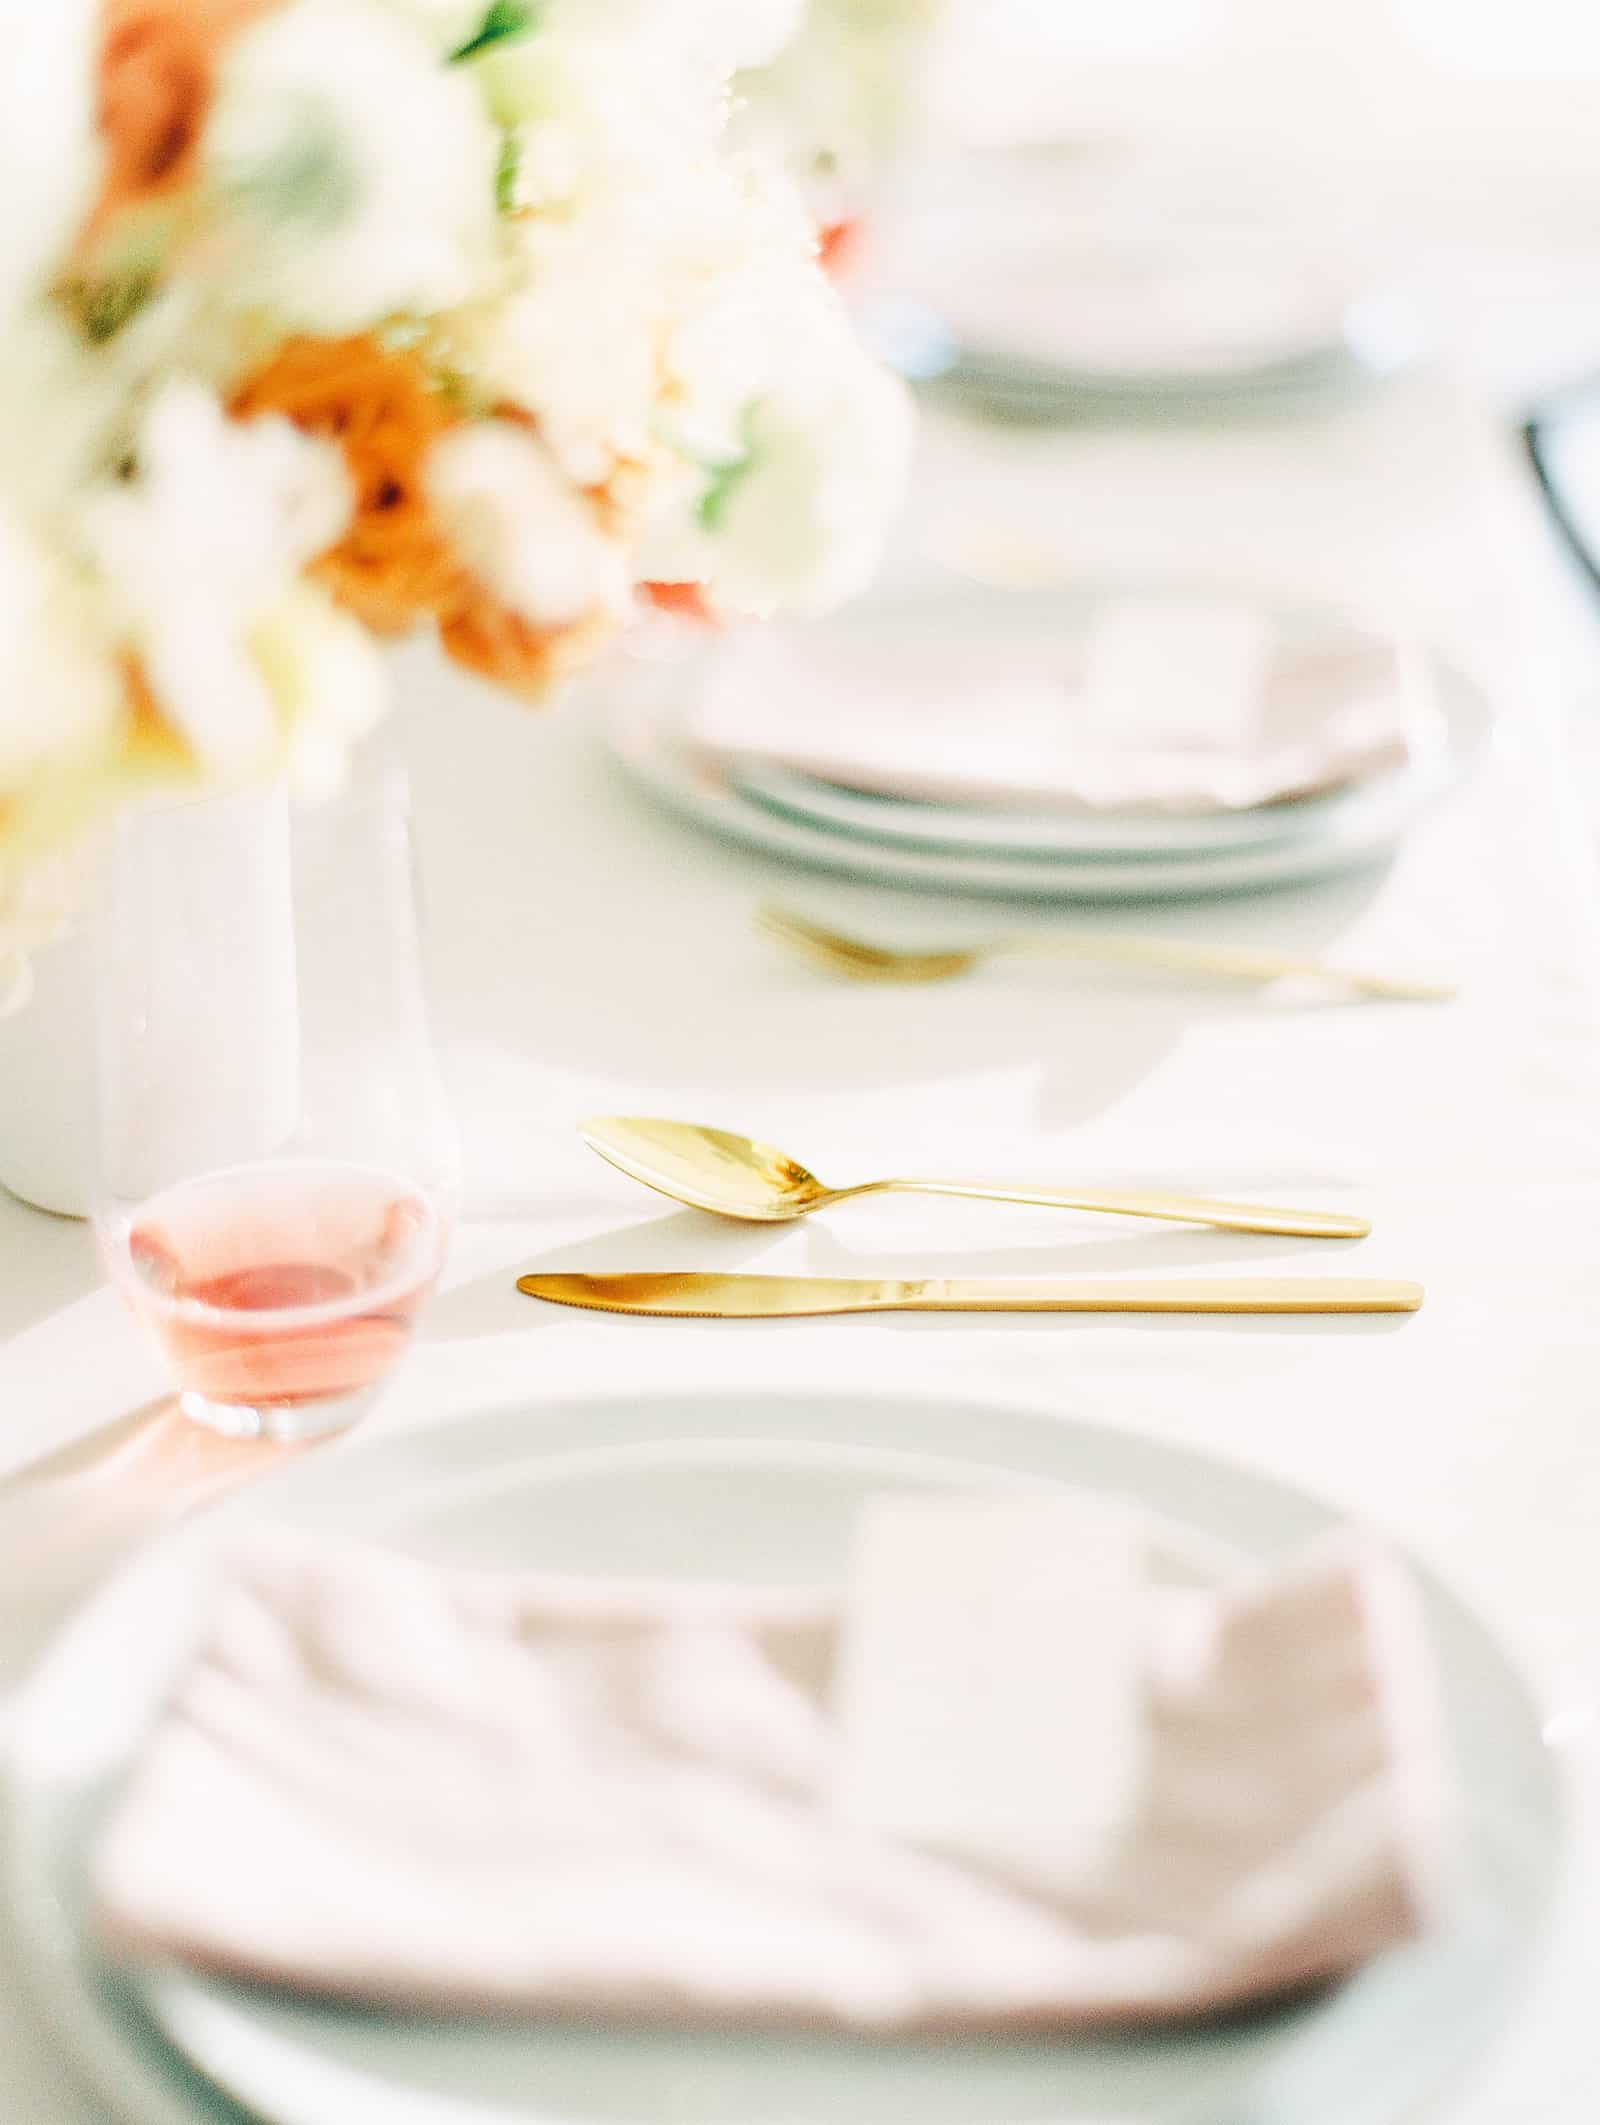 Modern wedding table scape with white and orange flower centerpiece and blush pink napkins and gold cutlery